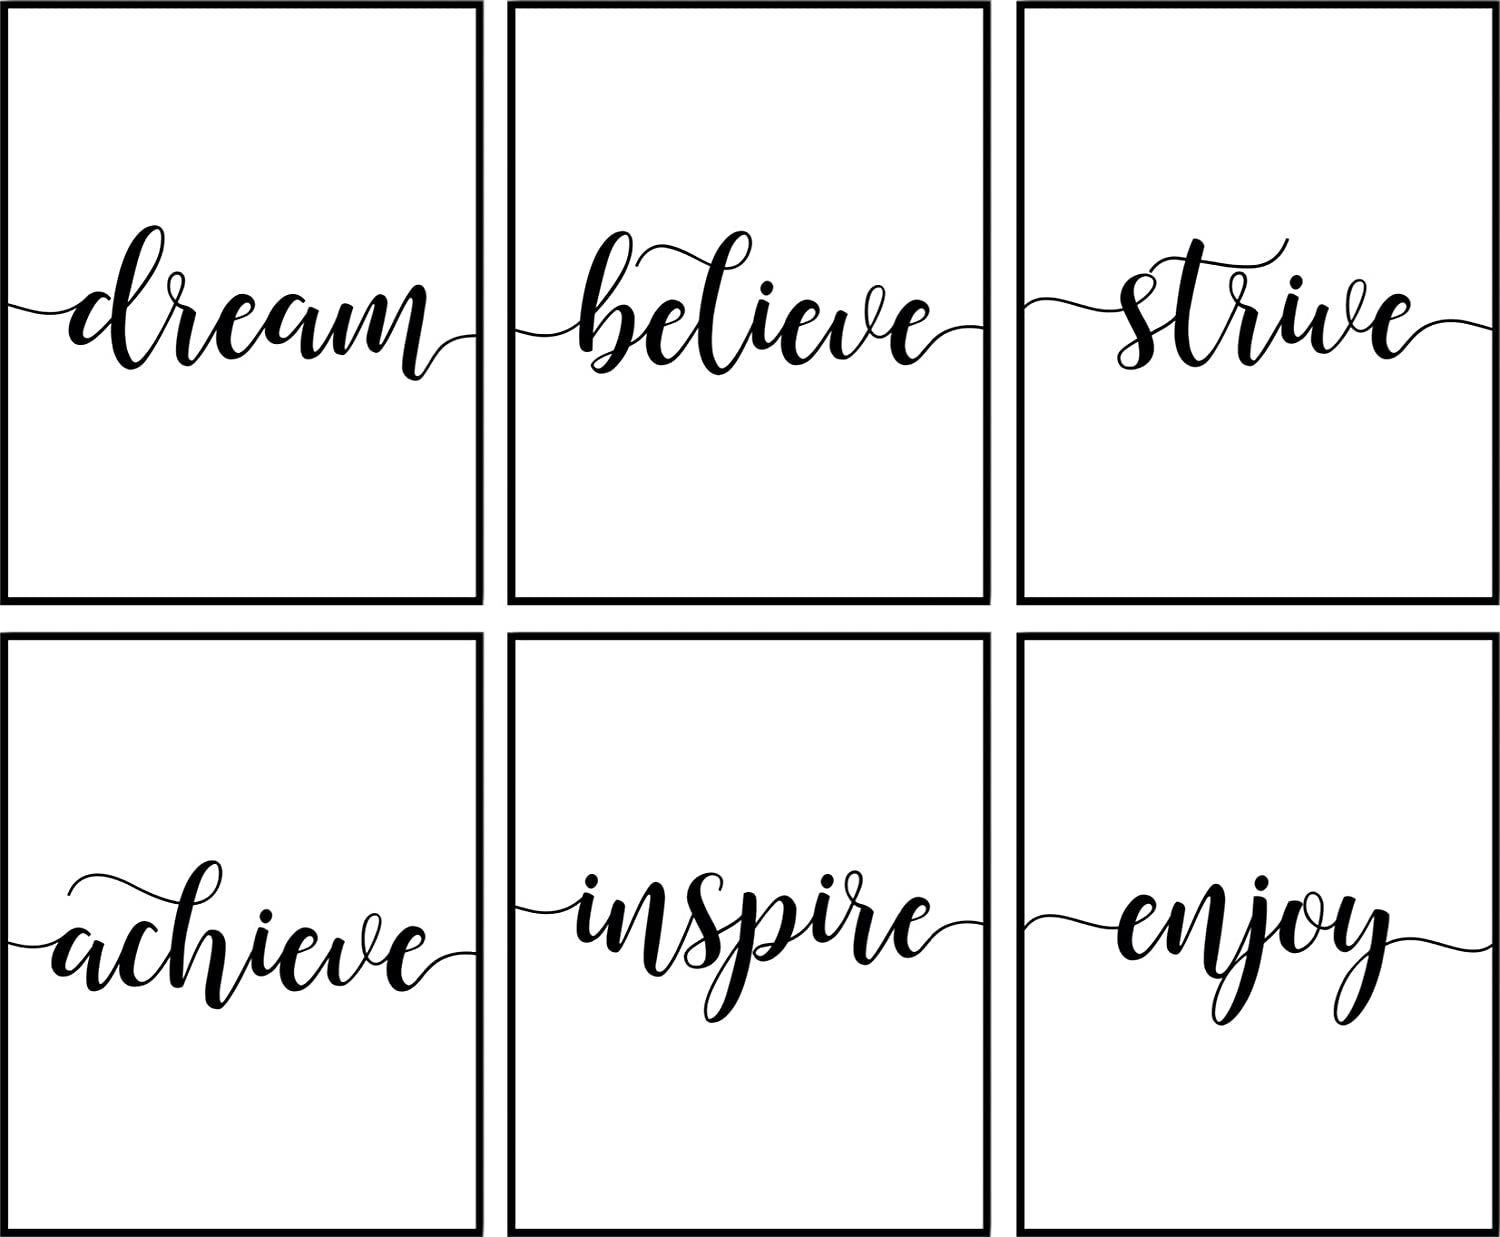 Inspirational Wall Art Décor For Office Or Home | Motivational & Positive Quotes & Sayings | Black & White | Six 8 x 10 Cute Prints Perfect Decorations For Any Room | Set 2 Unframed